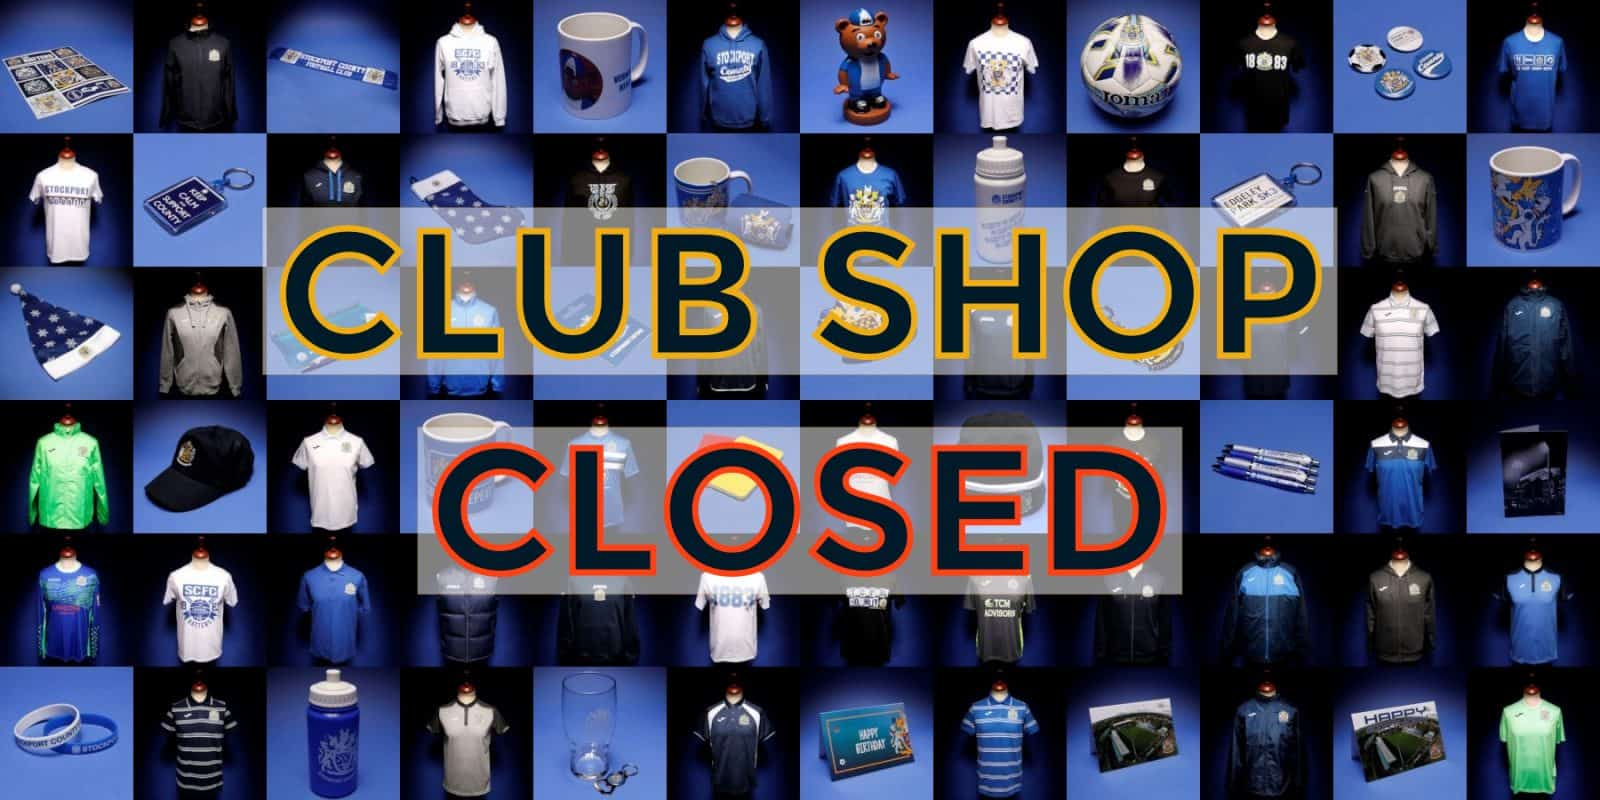 club shop closed on friday stockport county. Black Bedroom Furniture Sets. Home Design Ideas